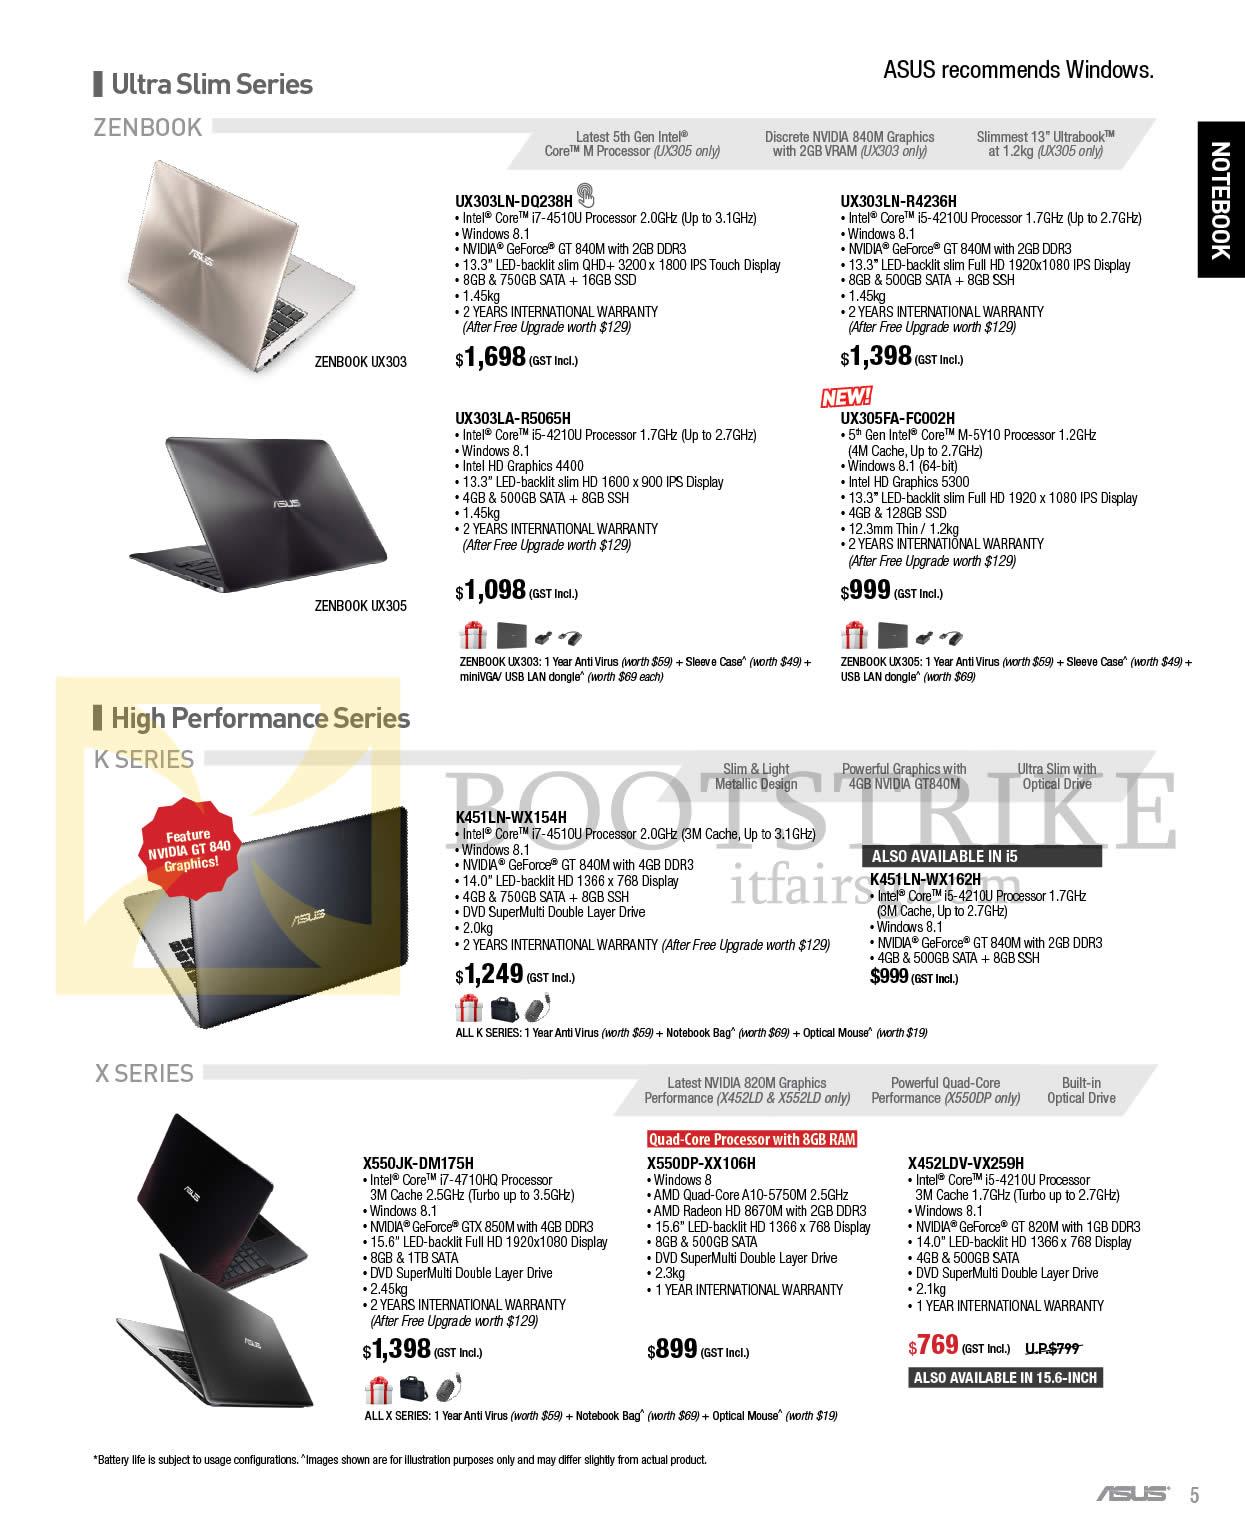 IT SHOW 2015 price list image brochure of ASUS Notebooks Zenbook, K X UX303LN-DQ238H, R4236H, UX303U-R5065H, UX305FA-FC002H, K451LN-WX154H, WX162H, X550JK-DM175H, X550DP-XX106H, X452LDV-VX259H